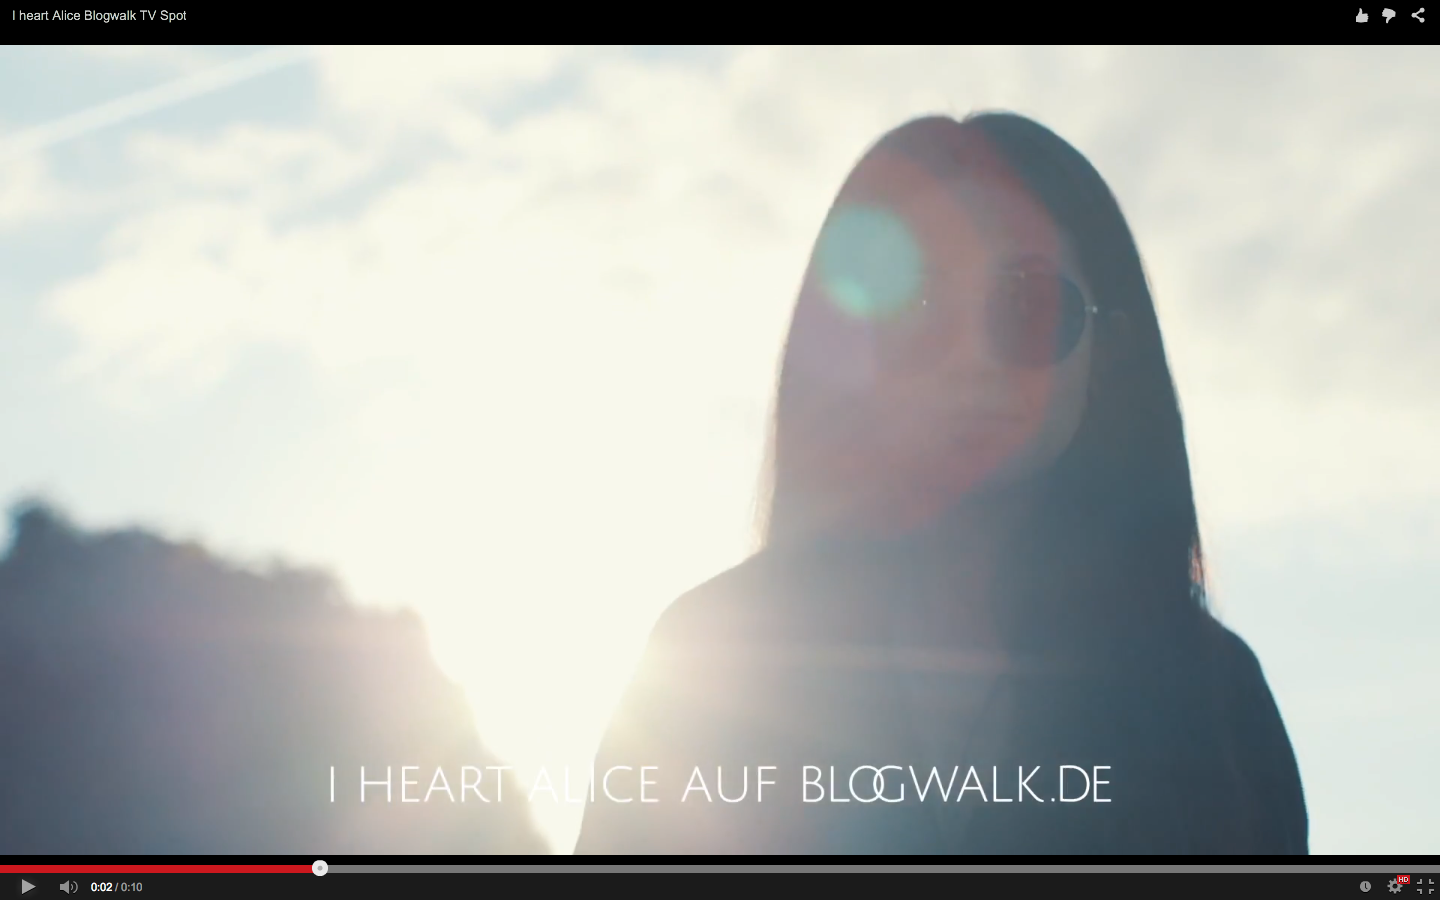 IHEARTALICE.DE – Fashion & Travel Blog: Blogwalk IHEARTALICE Werbespot